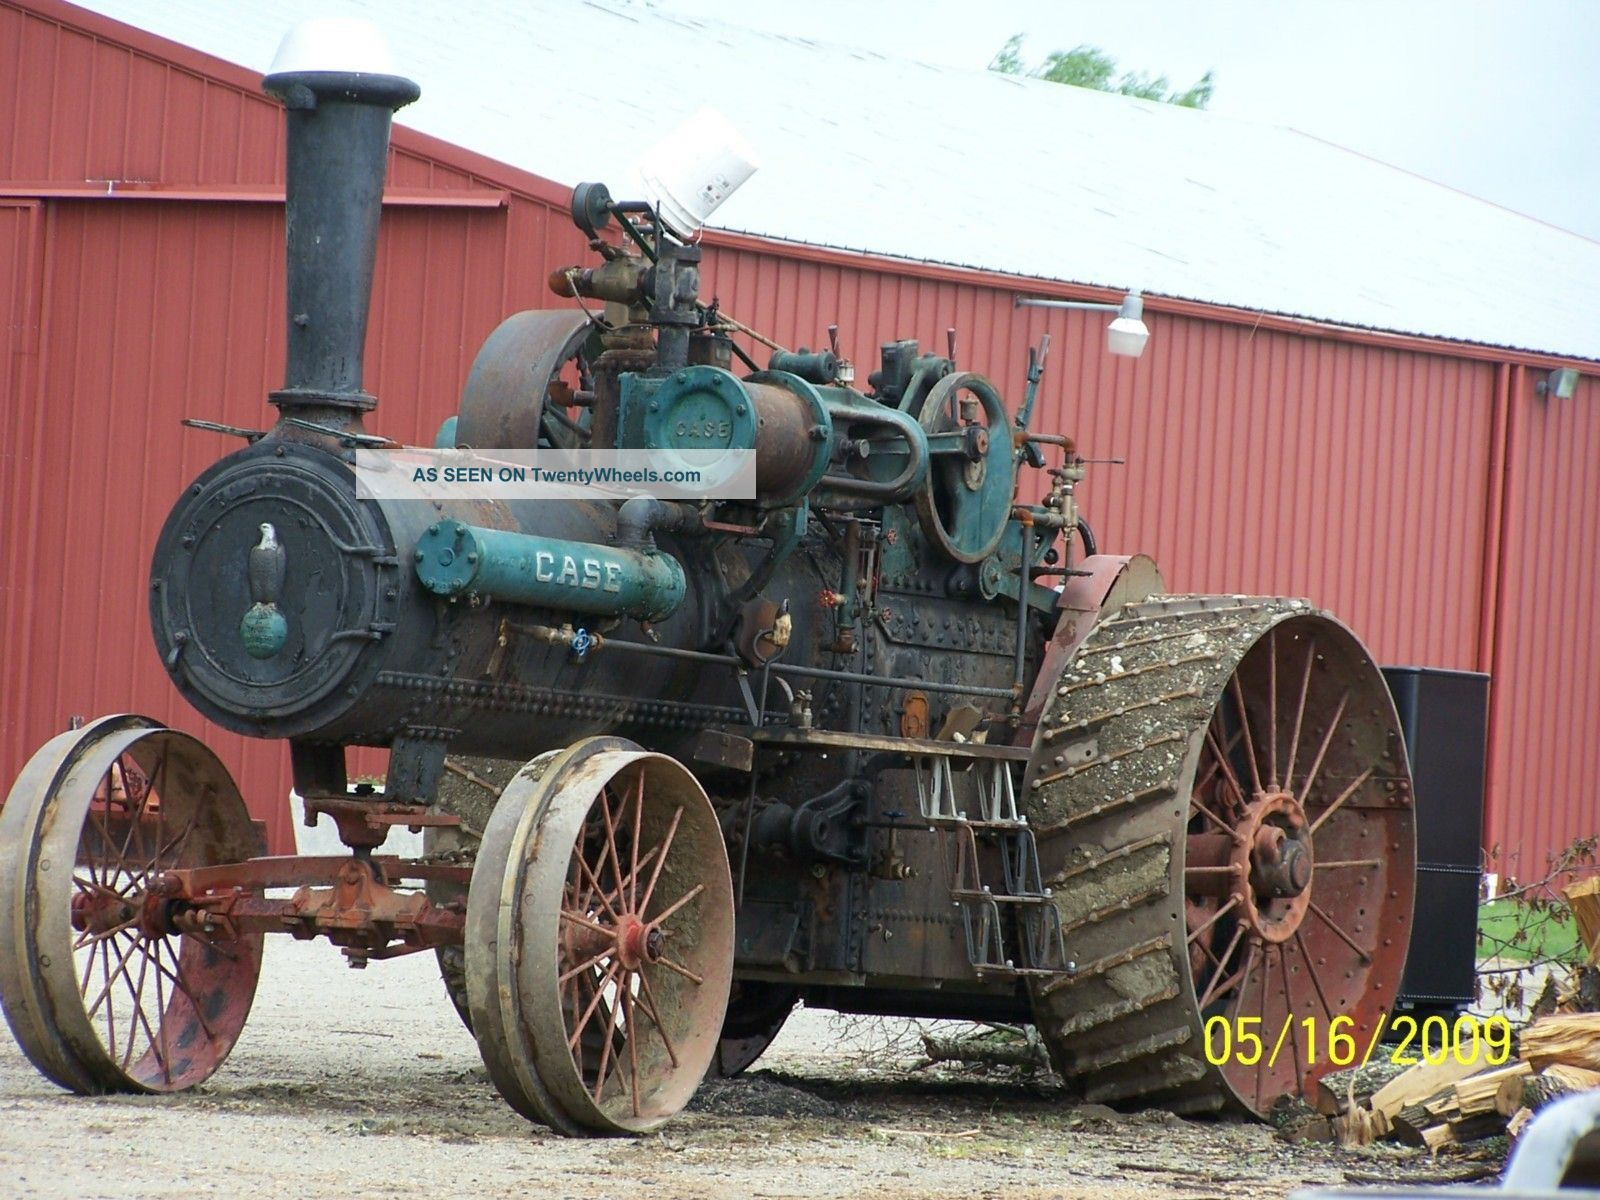 1909 25/75hp Case Steam Traction Engine Antique & Vintage Farm Equip photo